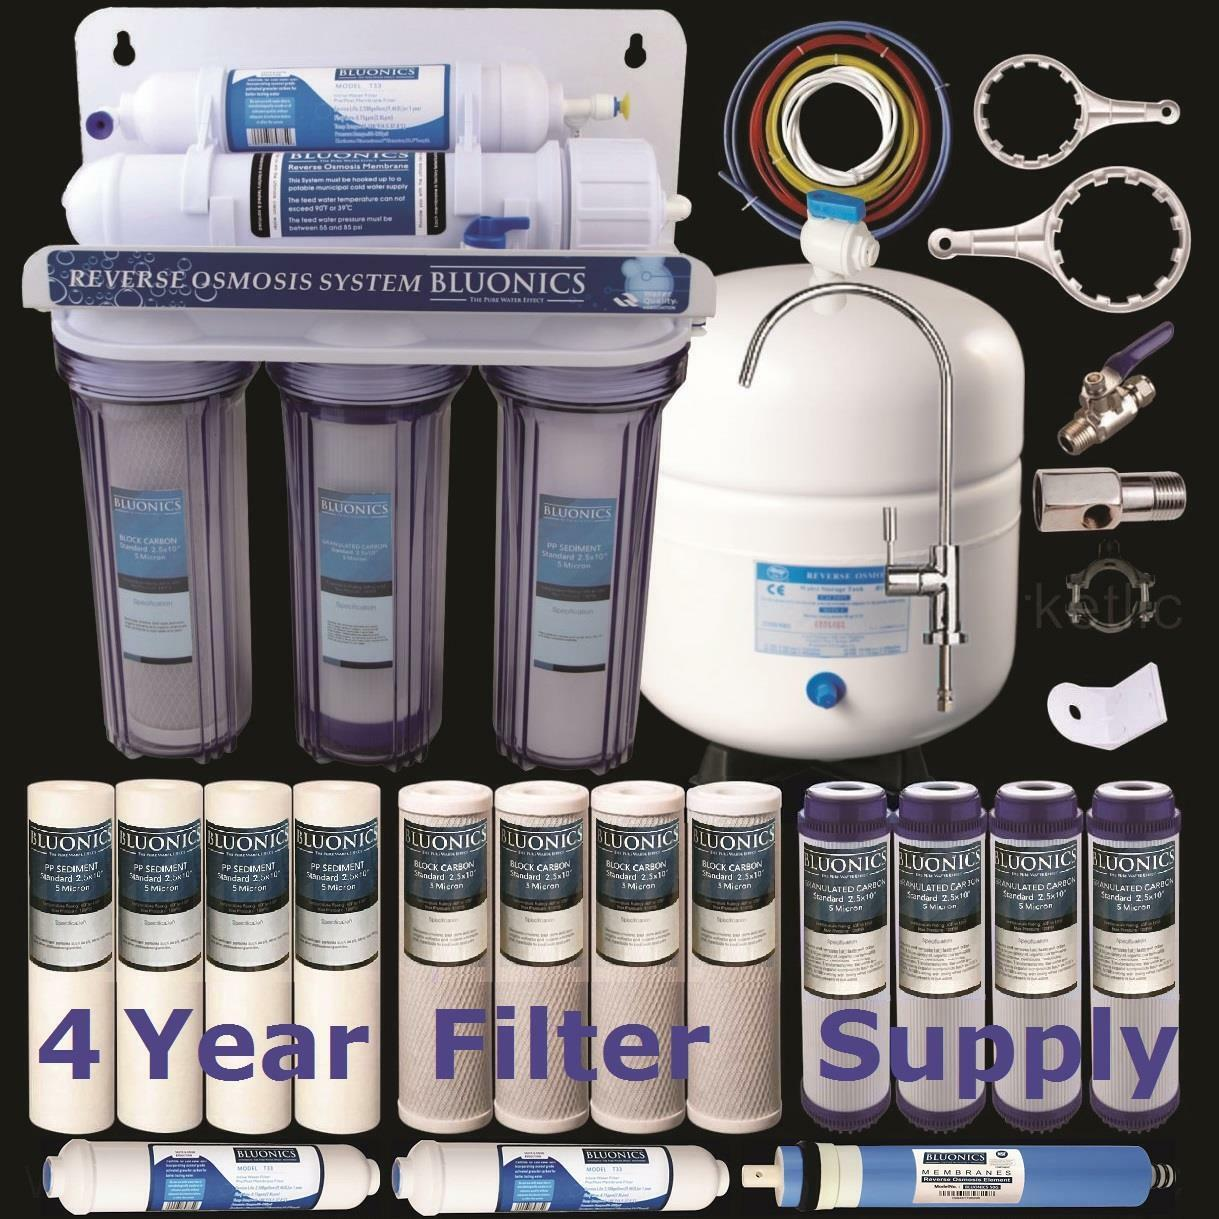 5 Stage Home Drinking Reverse Osmosis System  15 Total BlauONICS RO Water Filters